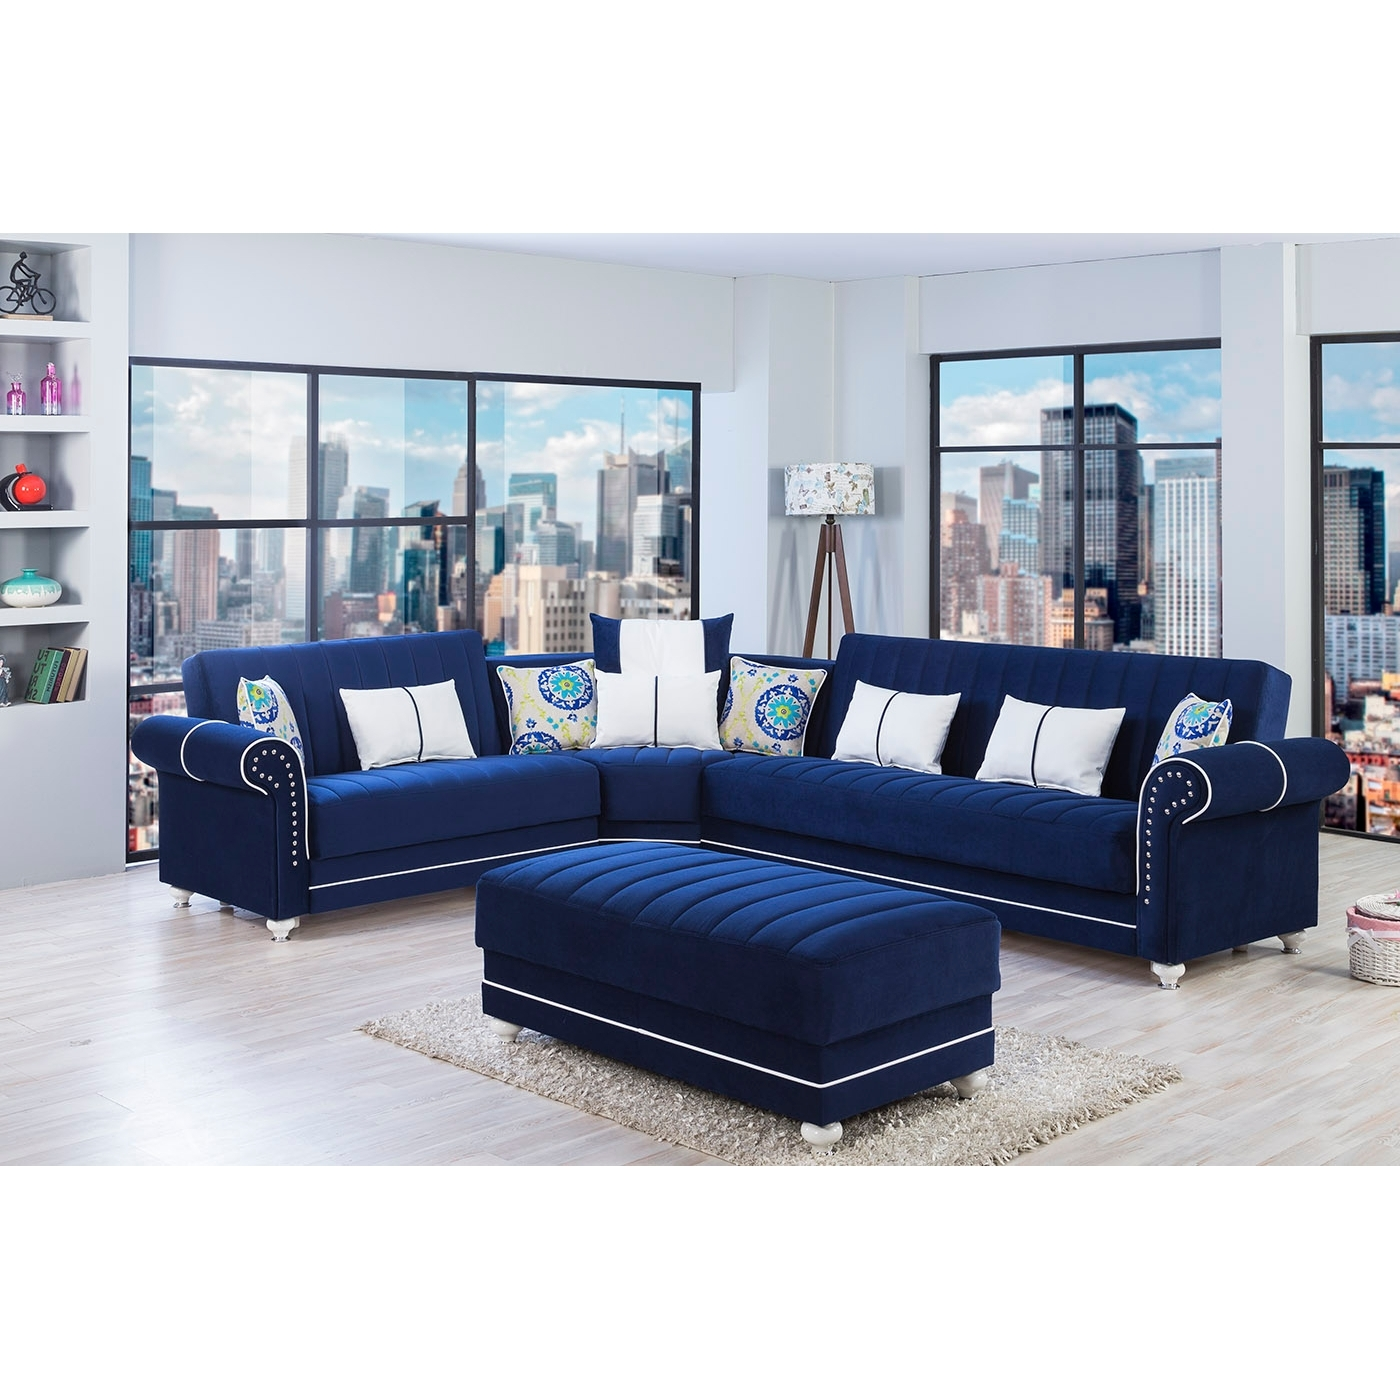 Most Popular Furniture :: Functional Sectionals :: Royal Home Sectional Riva Pertaining To Royal Furniture Sectional Sofas (View 7 of 15)